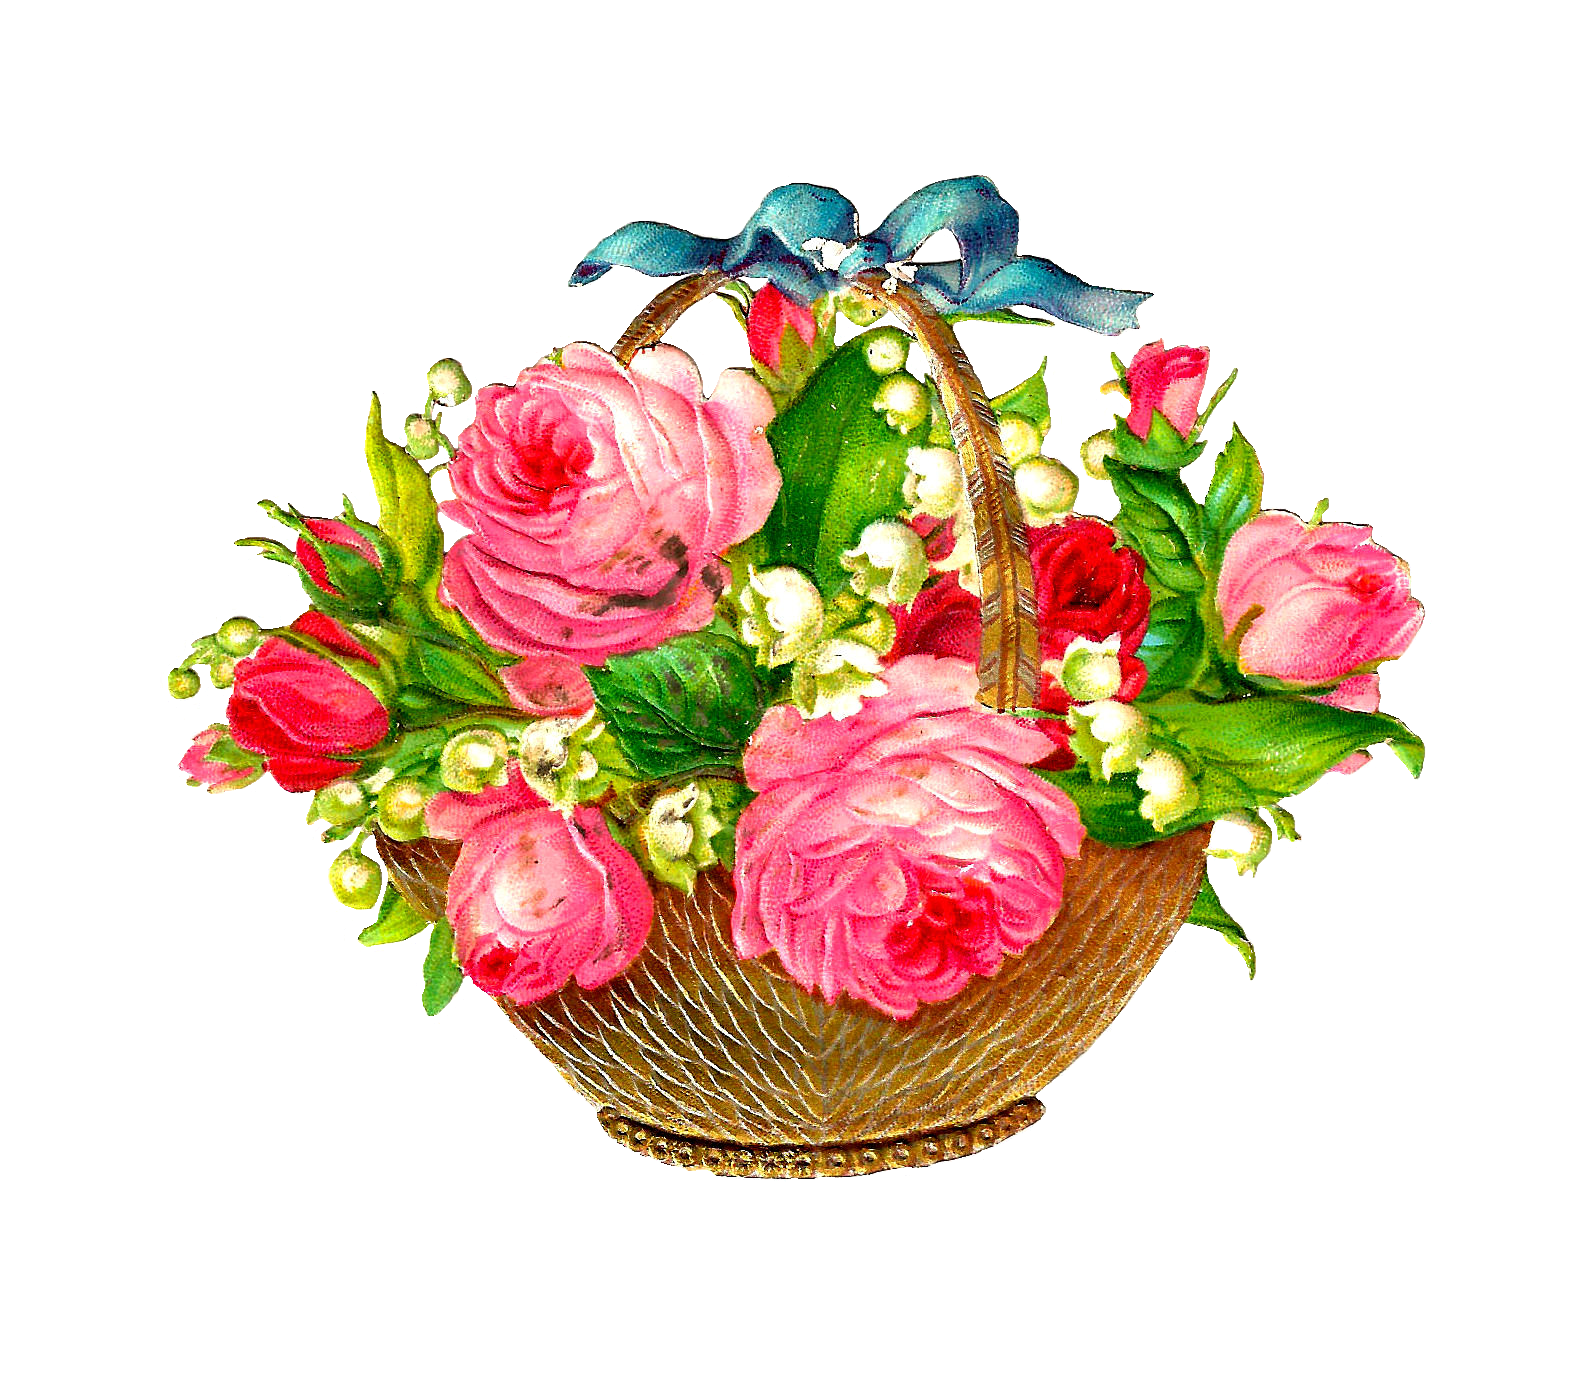 Bouquet of flowers png. Clipart rose bucket